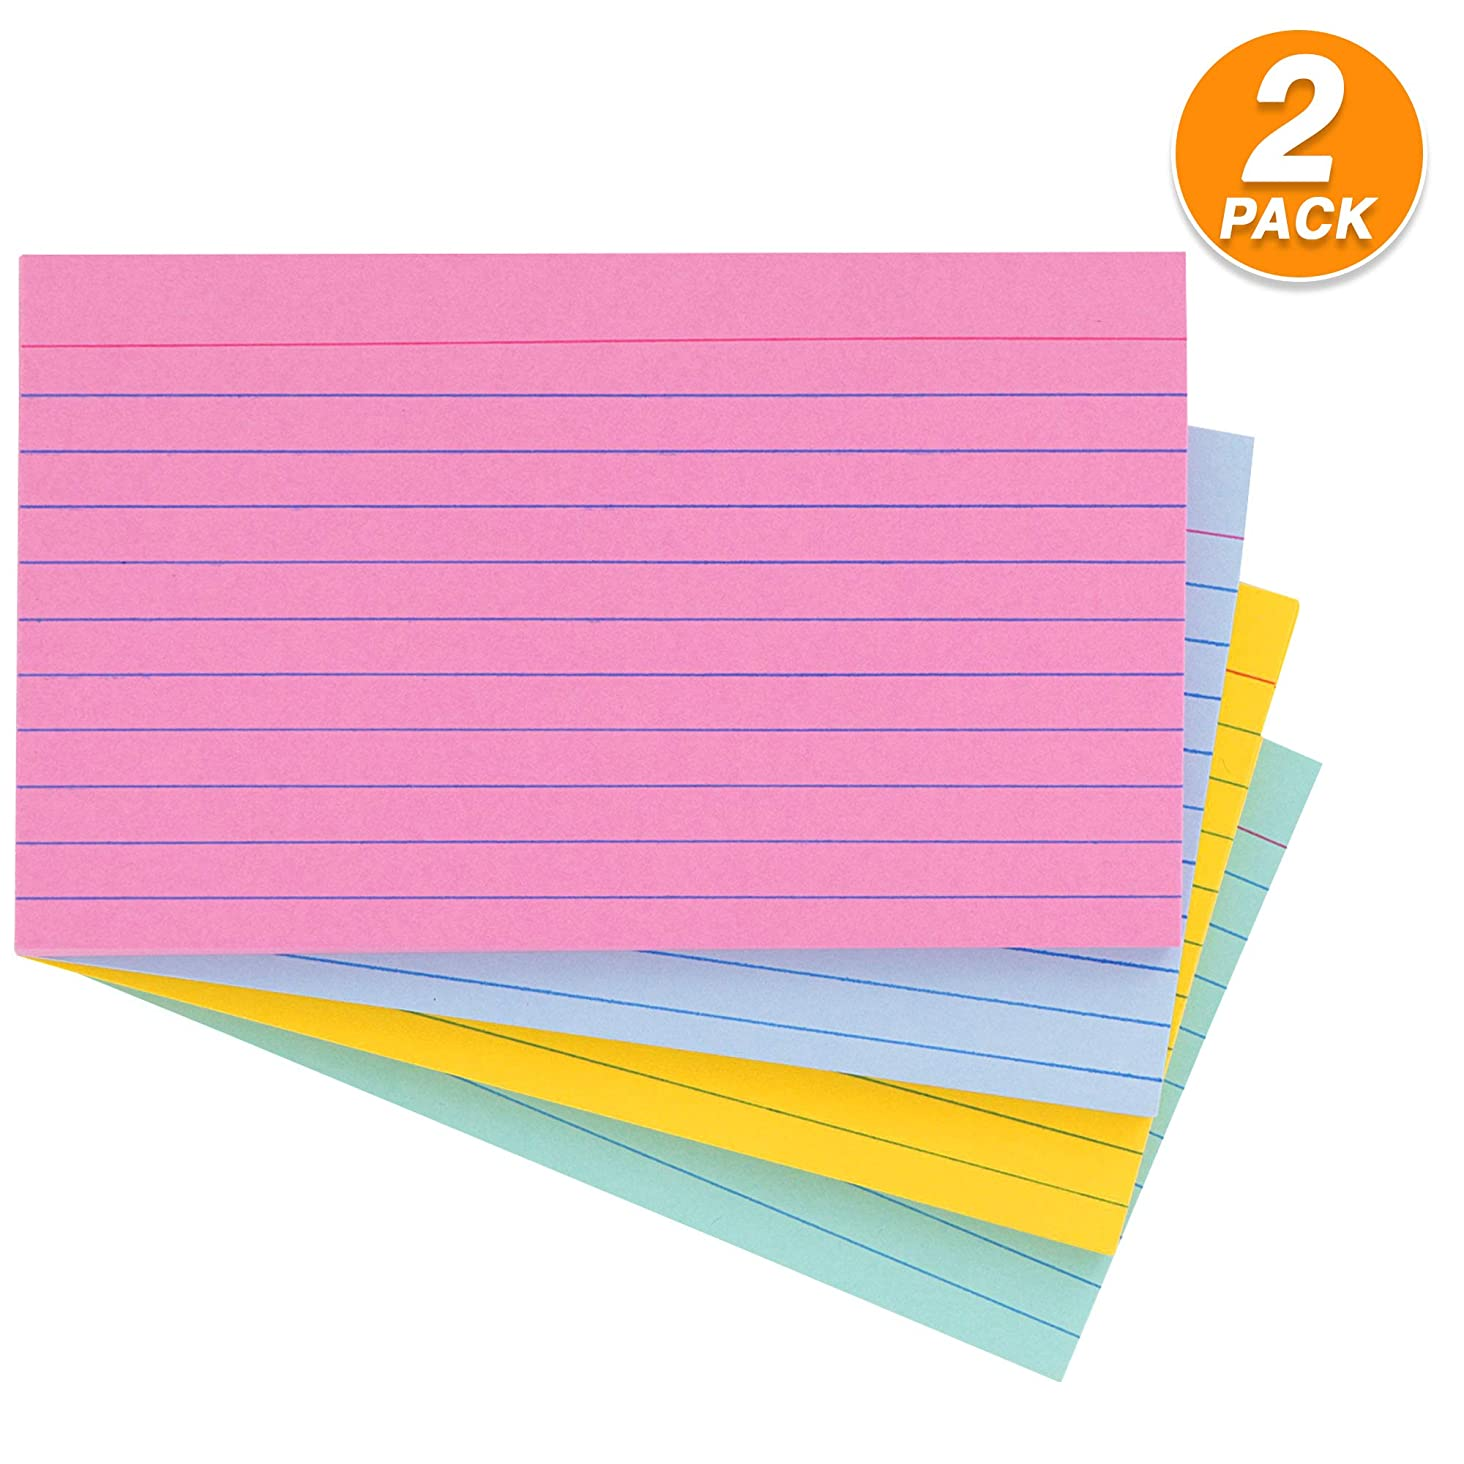 """Emraw Ruled Colored Index Card Plain Back 3""""x5"""" – For School, Home & Office (Pack of 200 Count)"""